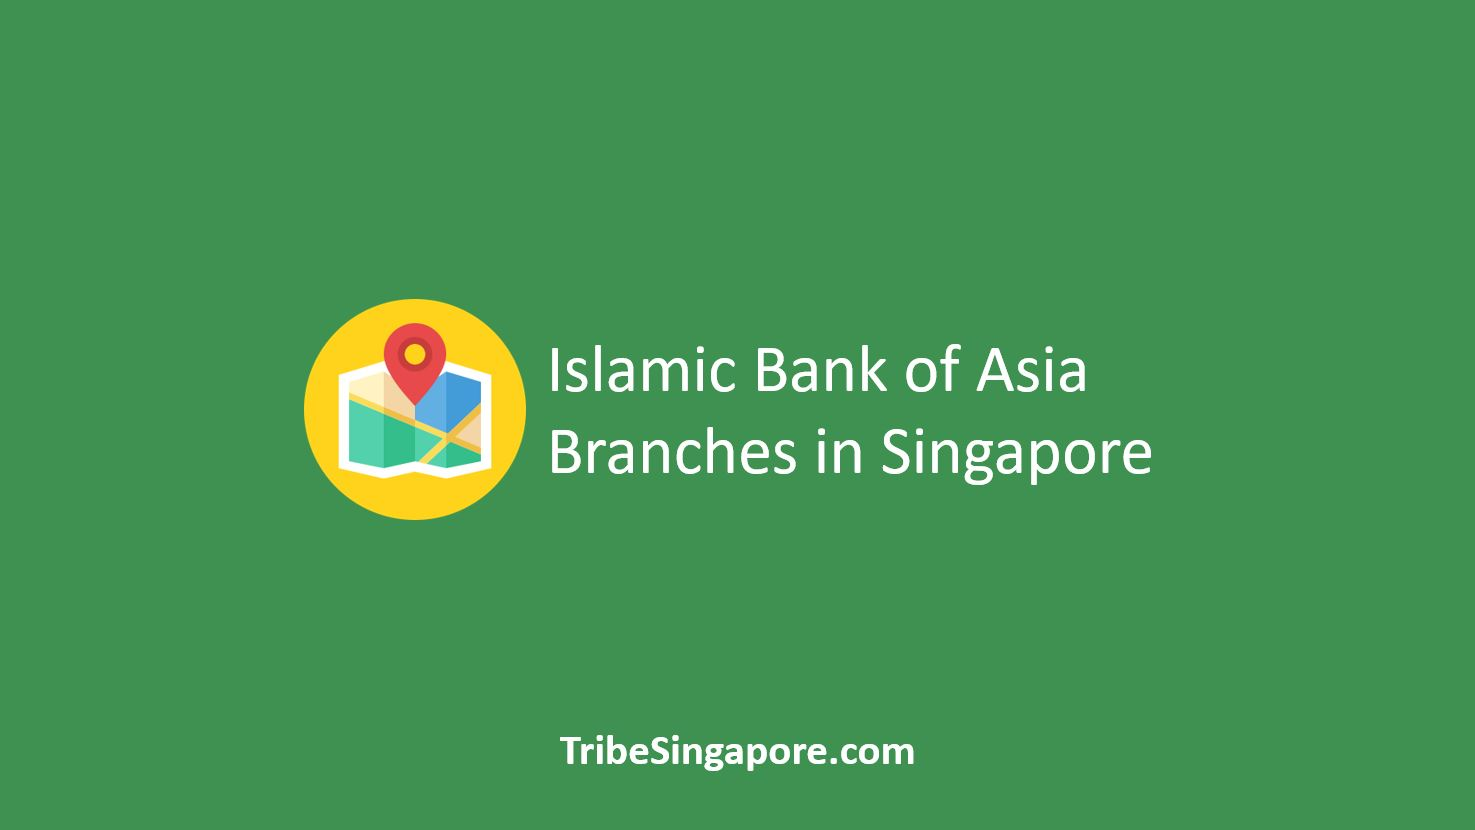 Islamic Bank of Asia Branches in Singapore